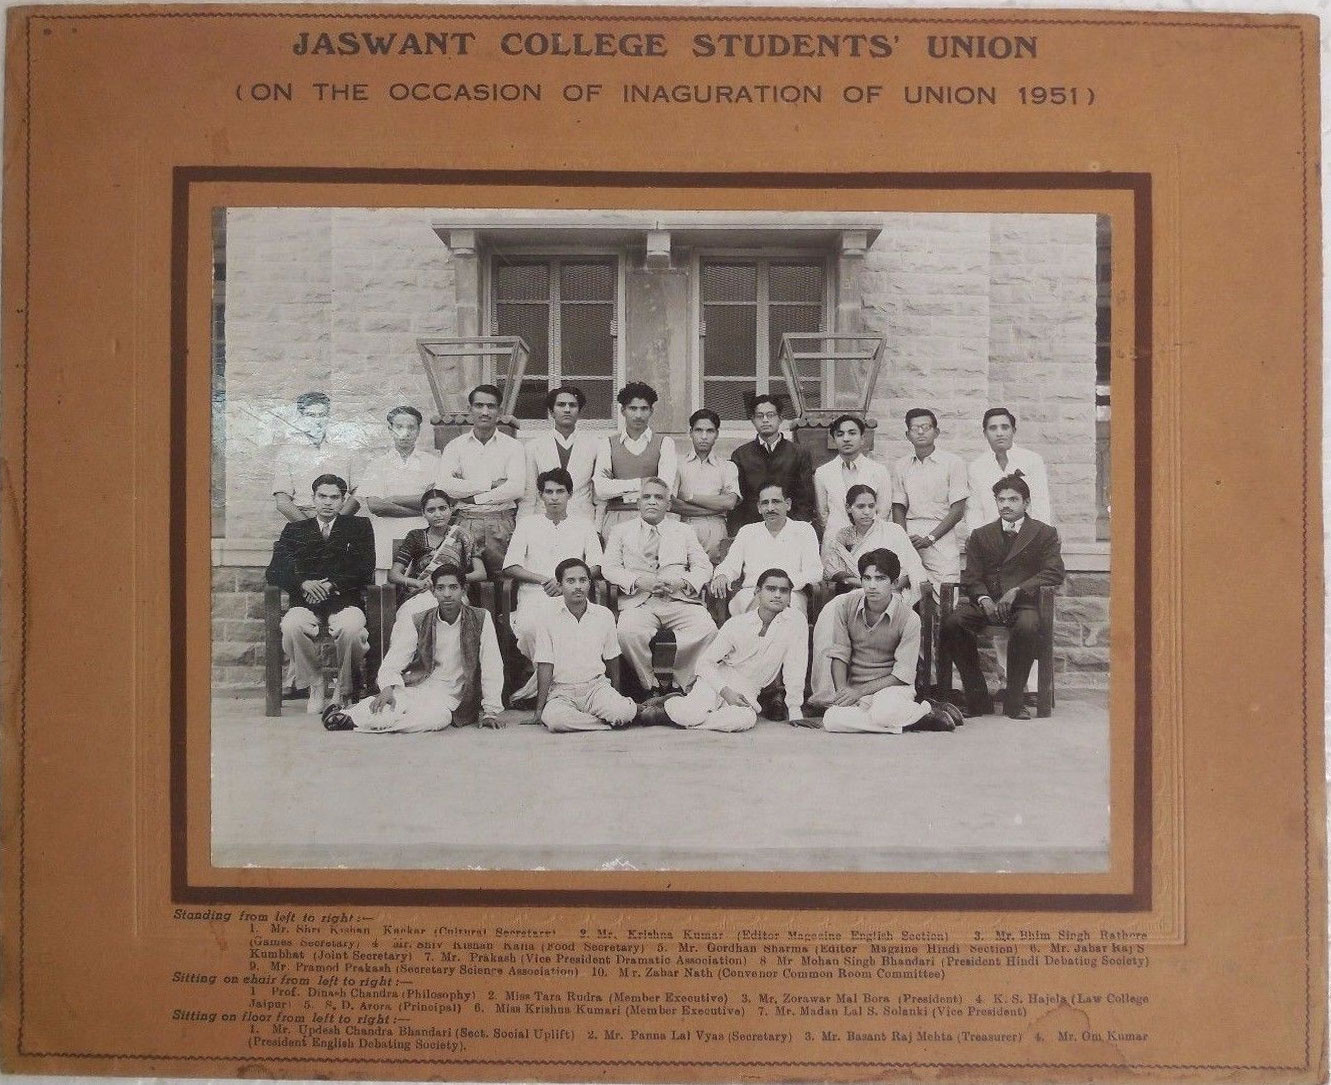 Jaswant College Students' Union, On the Occasion of Inaguration of Union 1951